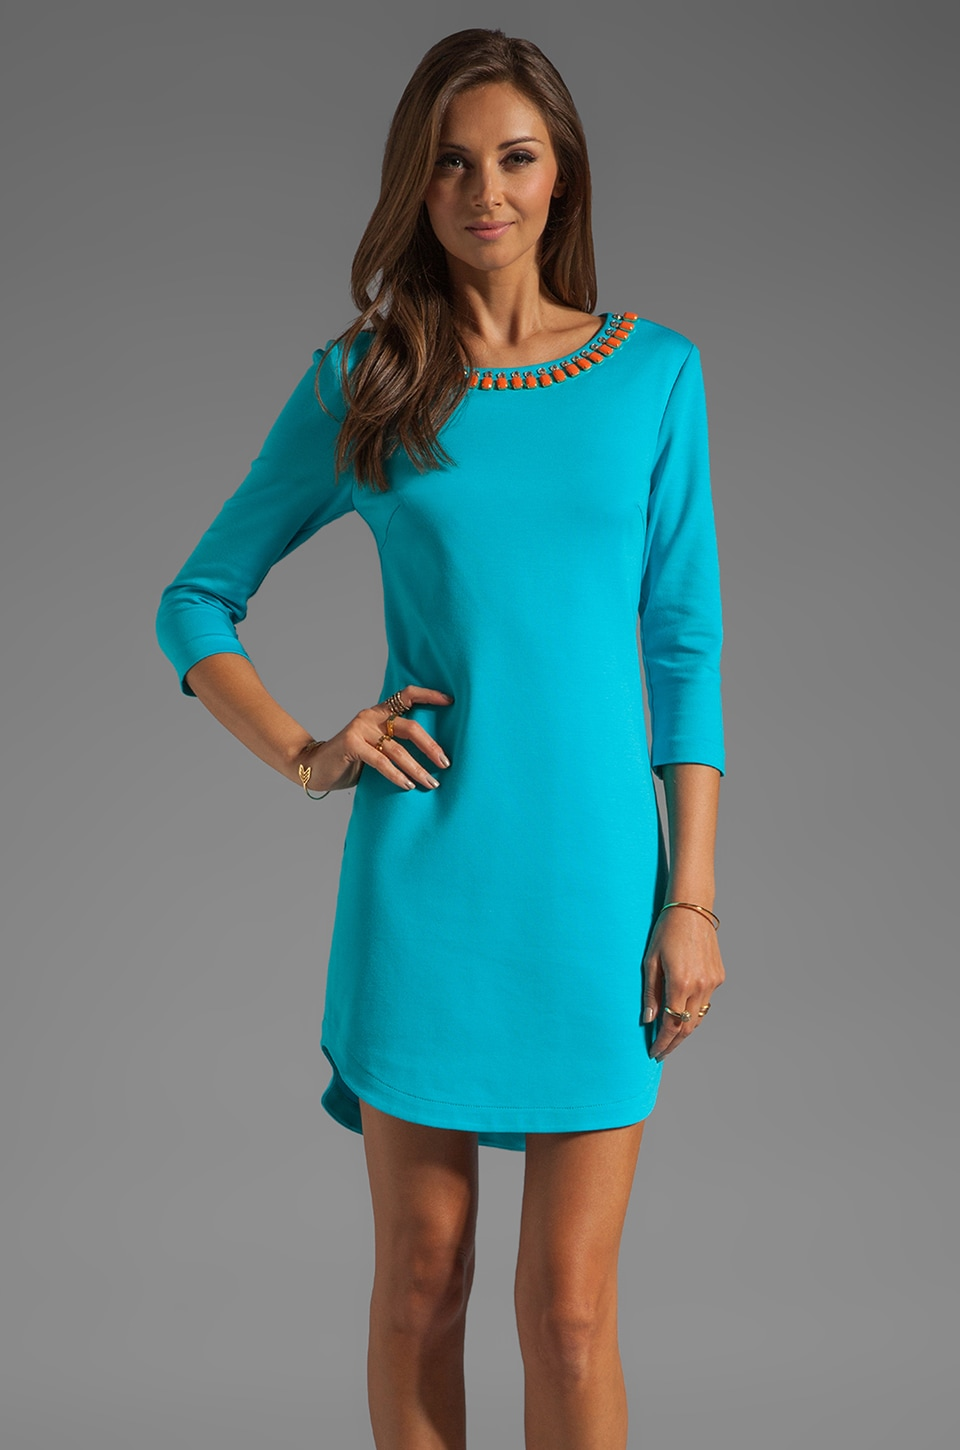 Trina Turk Tropical Ponte Sculptor Dress with Beaded Neckline in Biscayne Blue